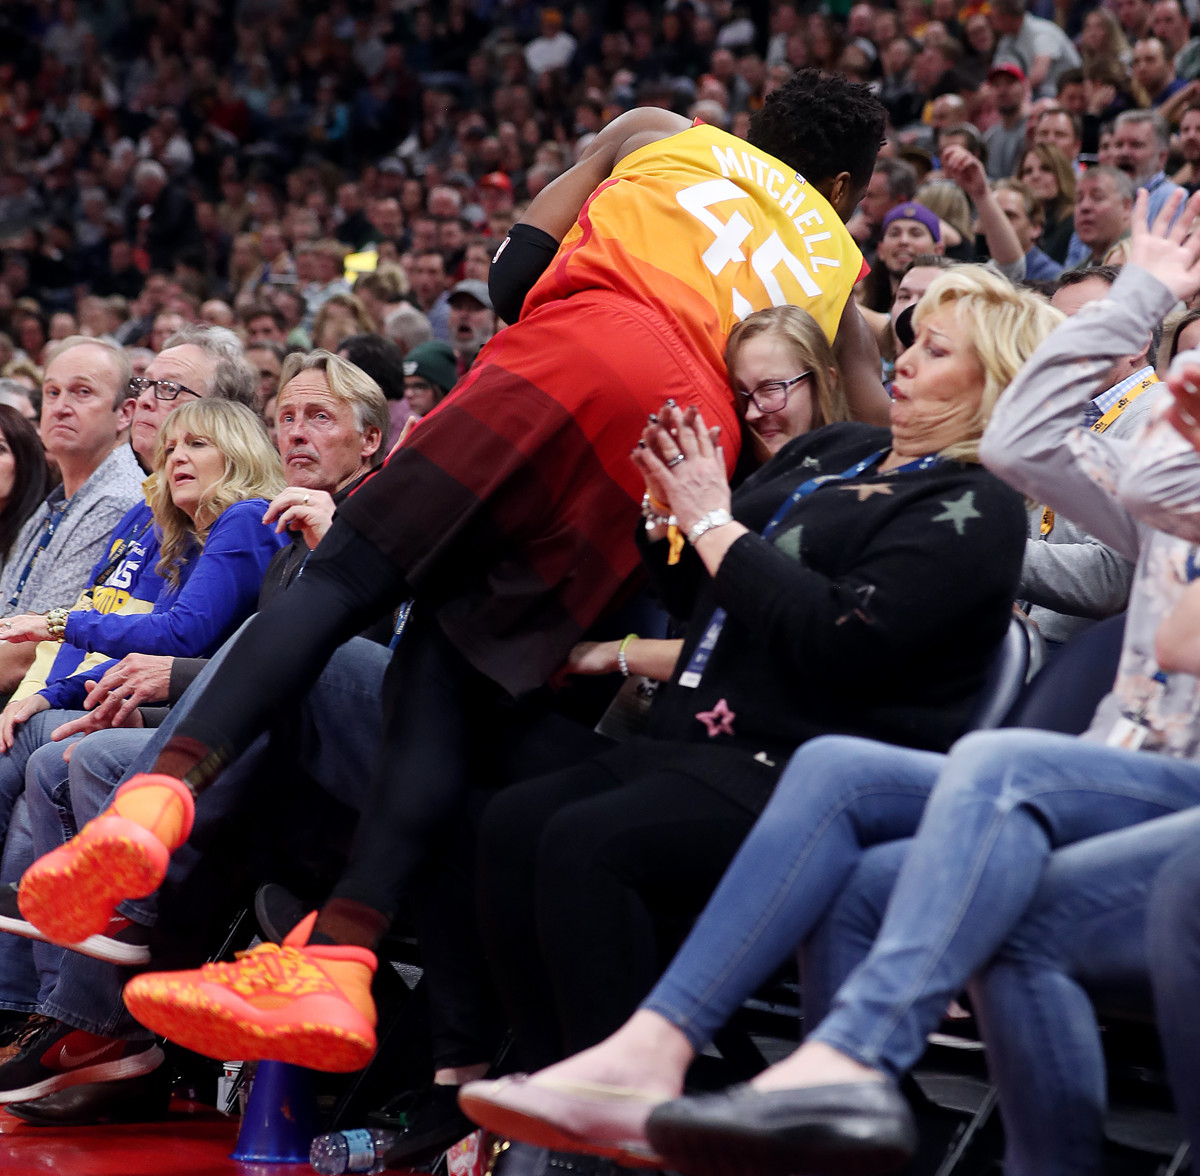 aeca4c73167 Donovan Mitchell's front row fall leaves Utah Jazz fan with 'bad' sprain  but lasting memory